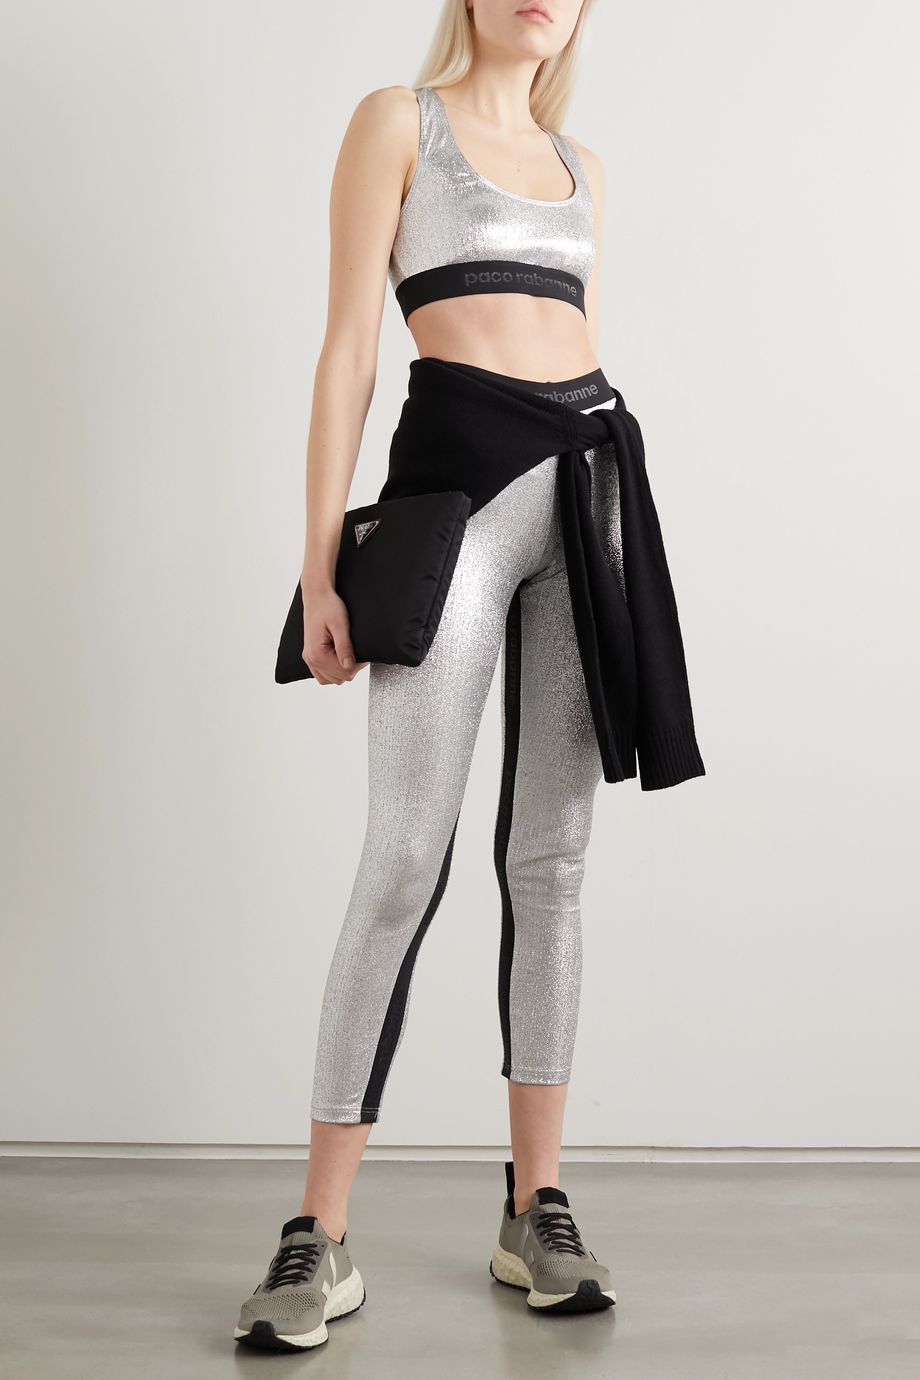 Paco Rabanne Two-tone metallic stretch leggings